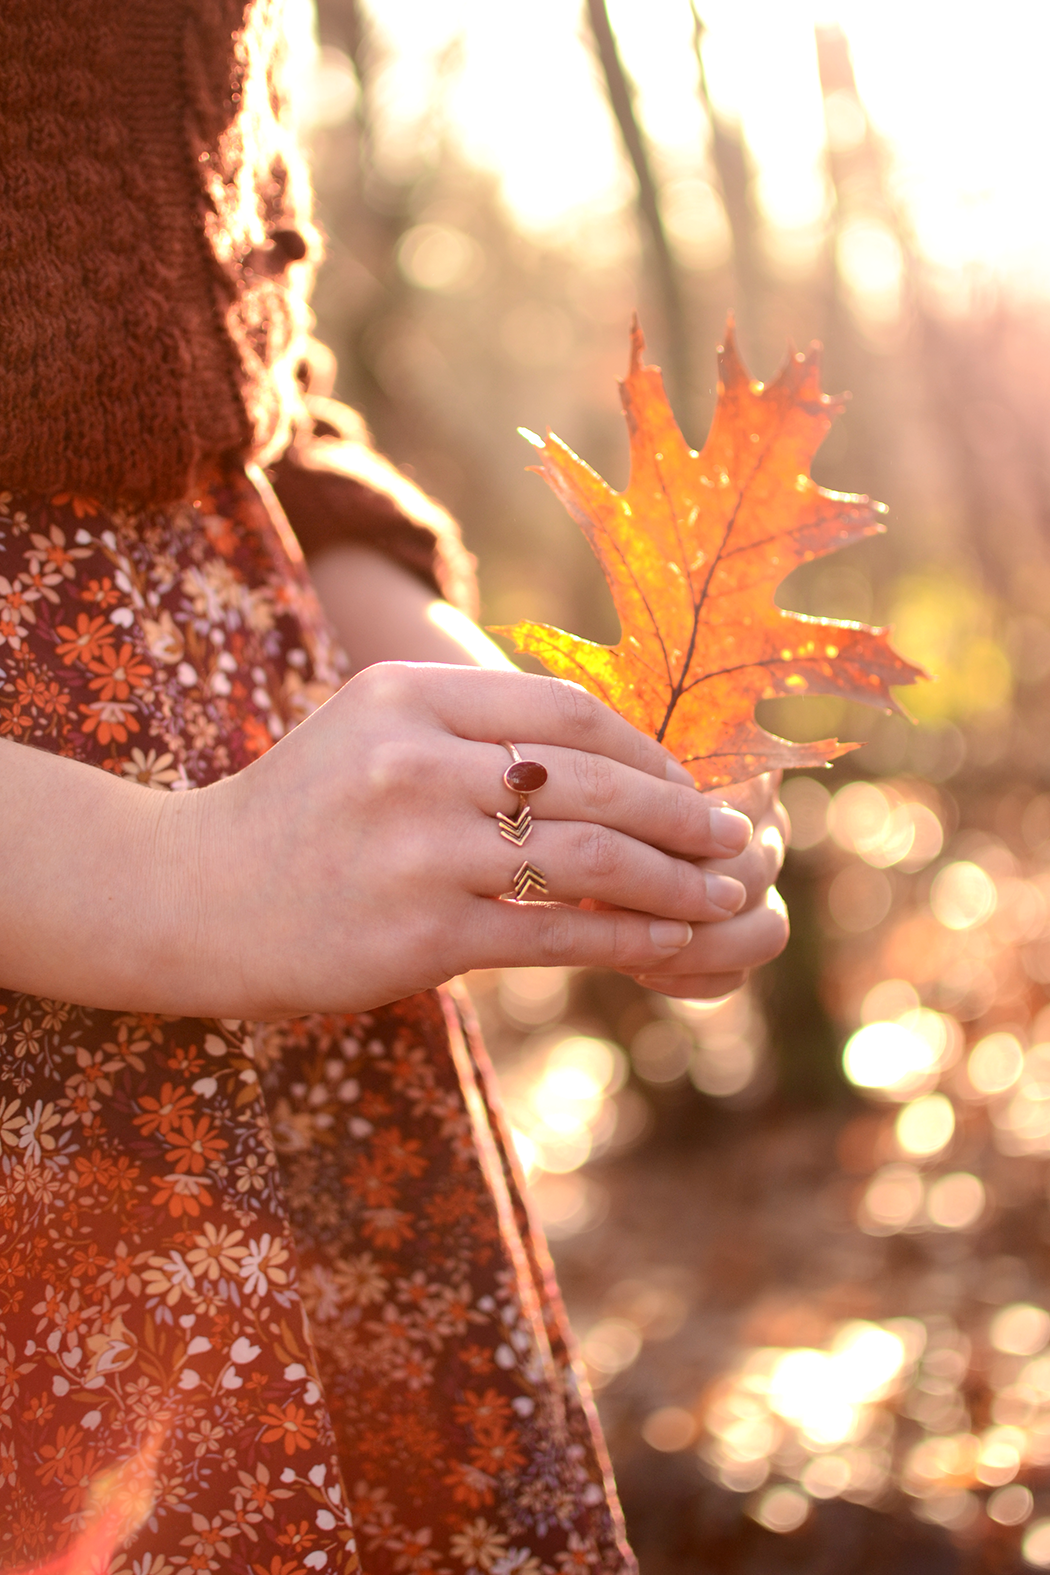 Retromantisch retro fashion blog New Look floral dress cable knit leaf Brandy melville rings arrow